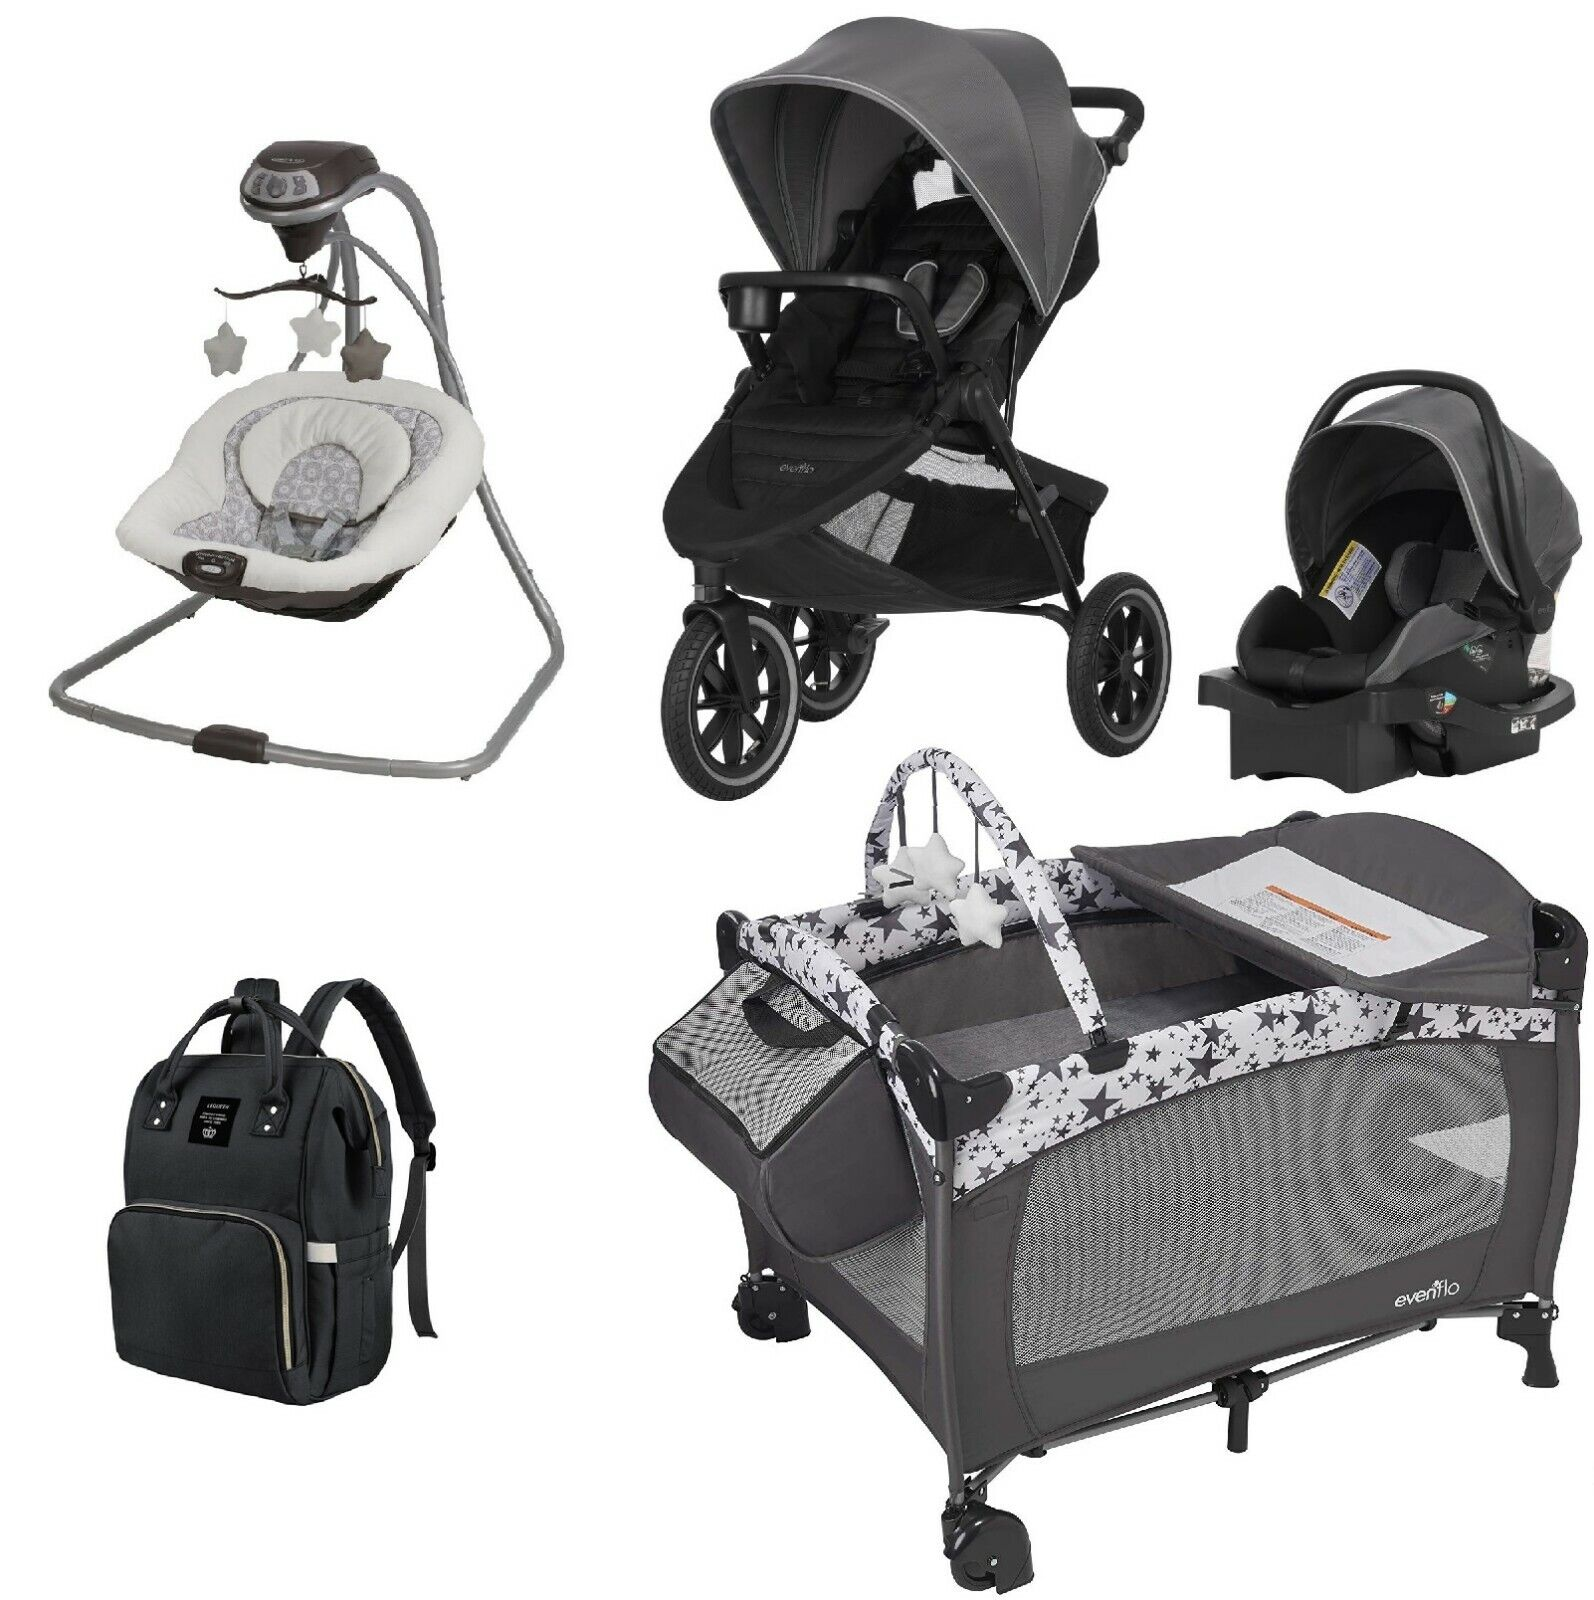 Evenflo Toddler Combo Set Jogger Stroller Car Seat Baby Swin